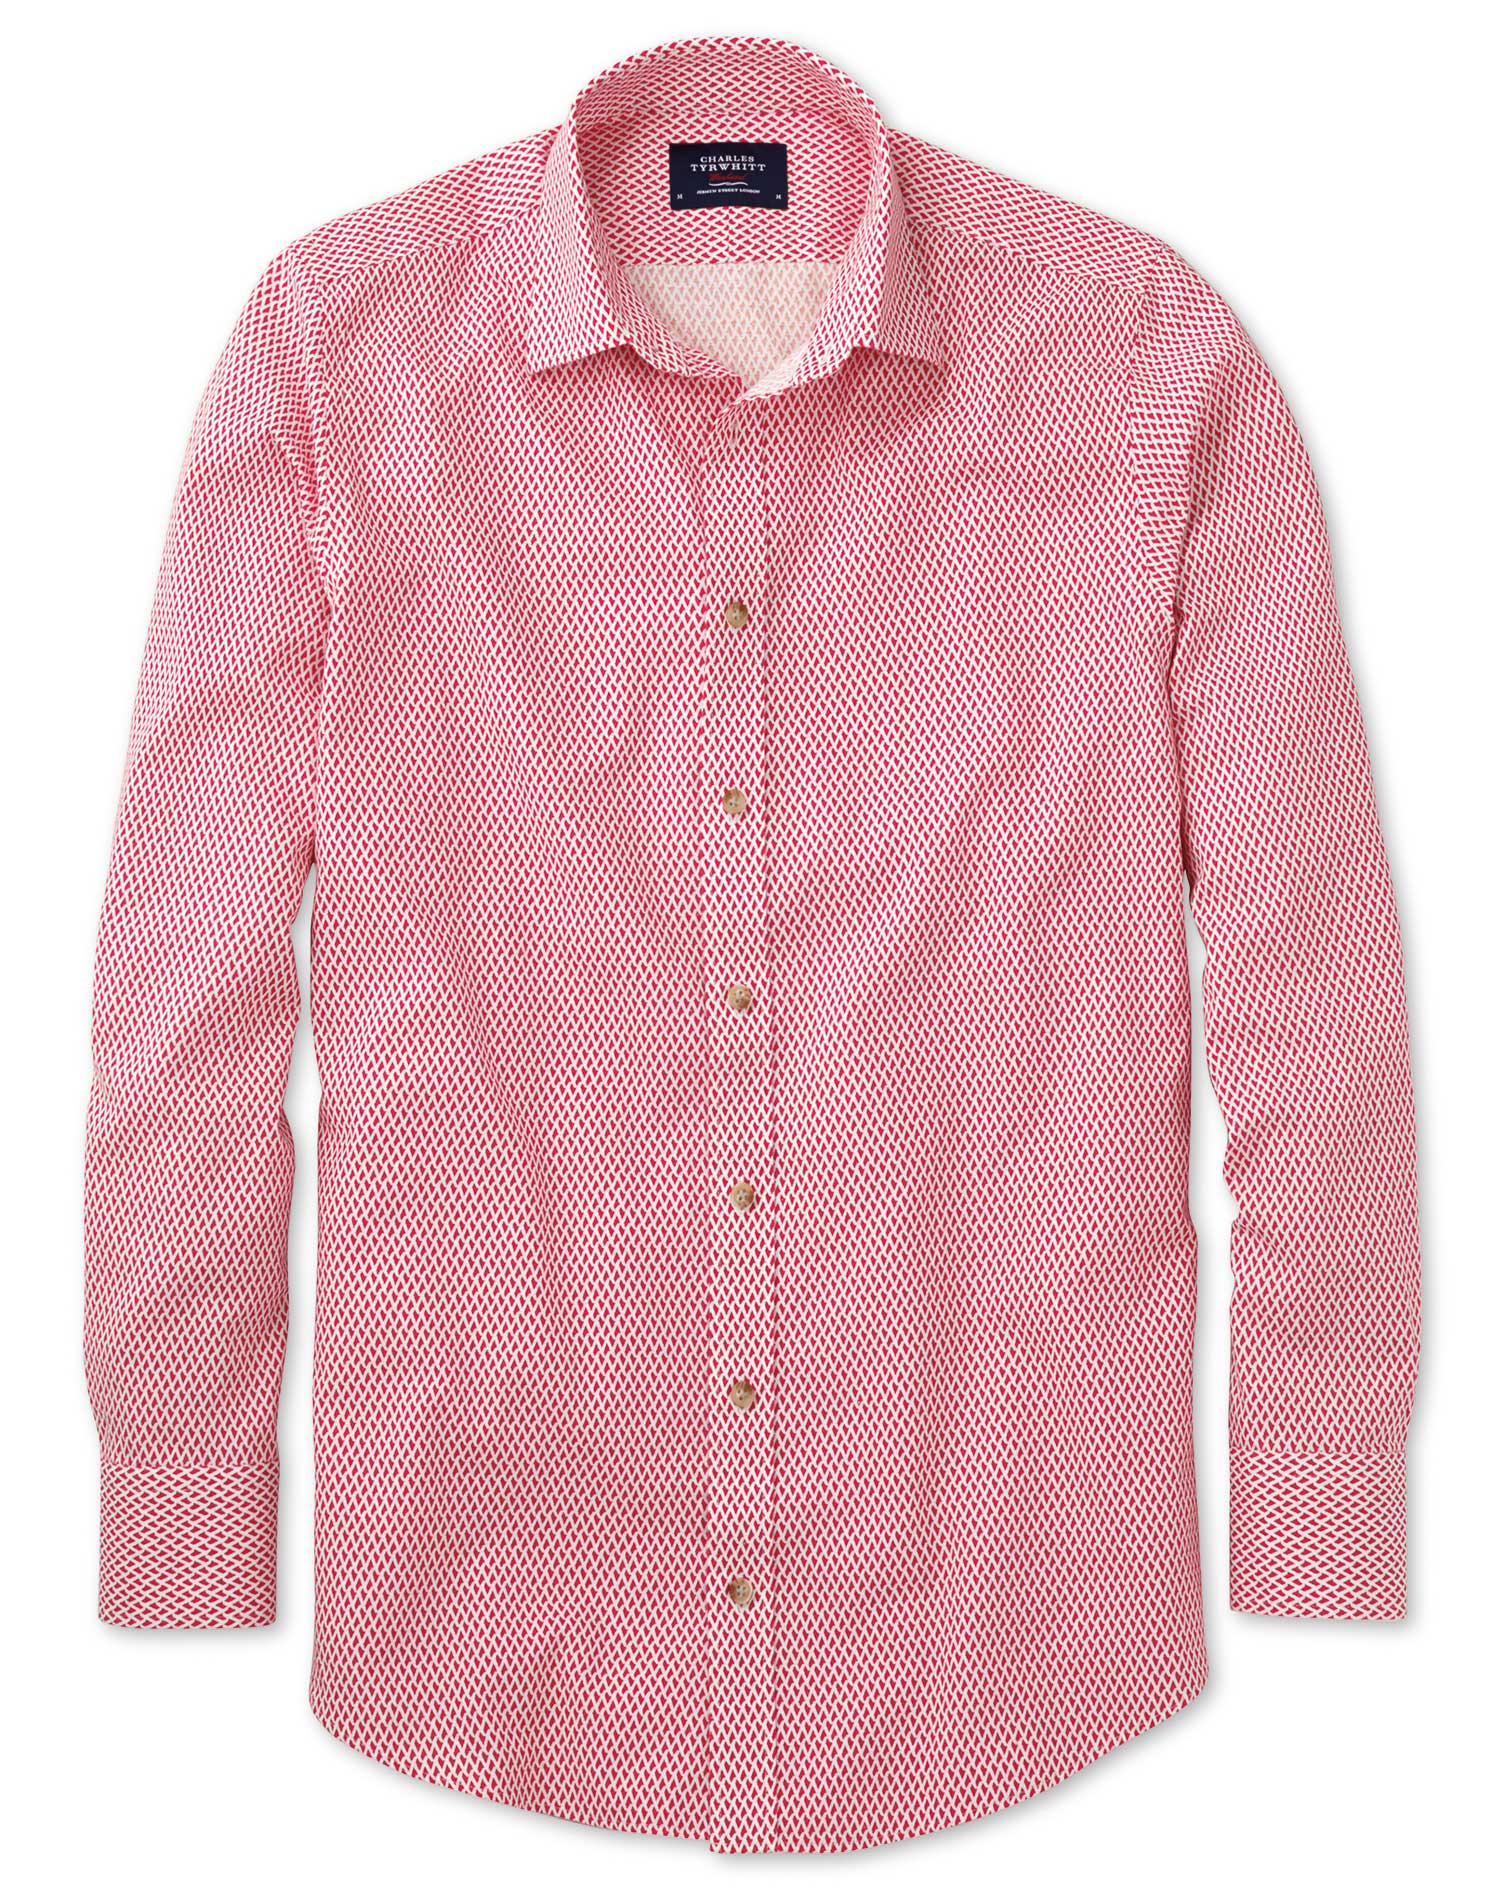 Classic Fit Coral and White Print Shirt Single Cuff Size Medium by Charles Tyrwhitt